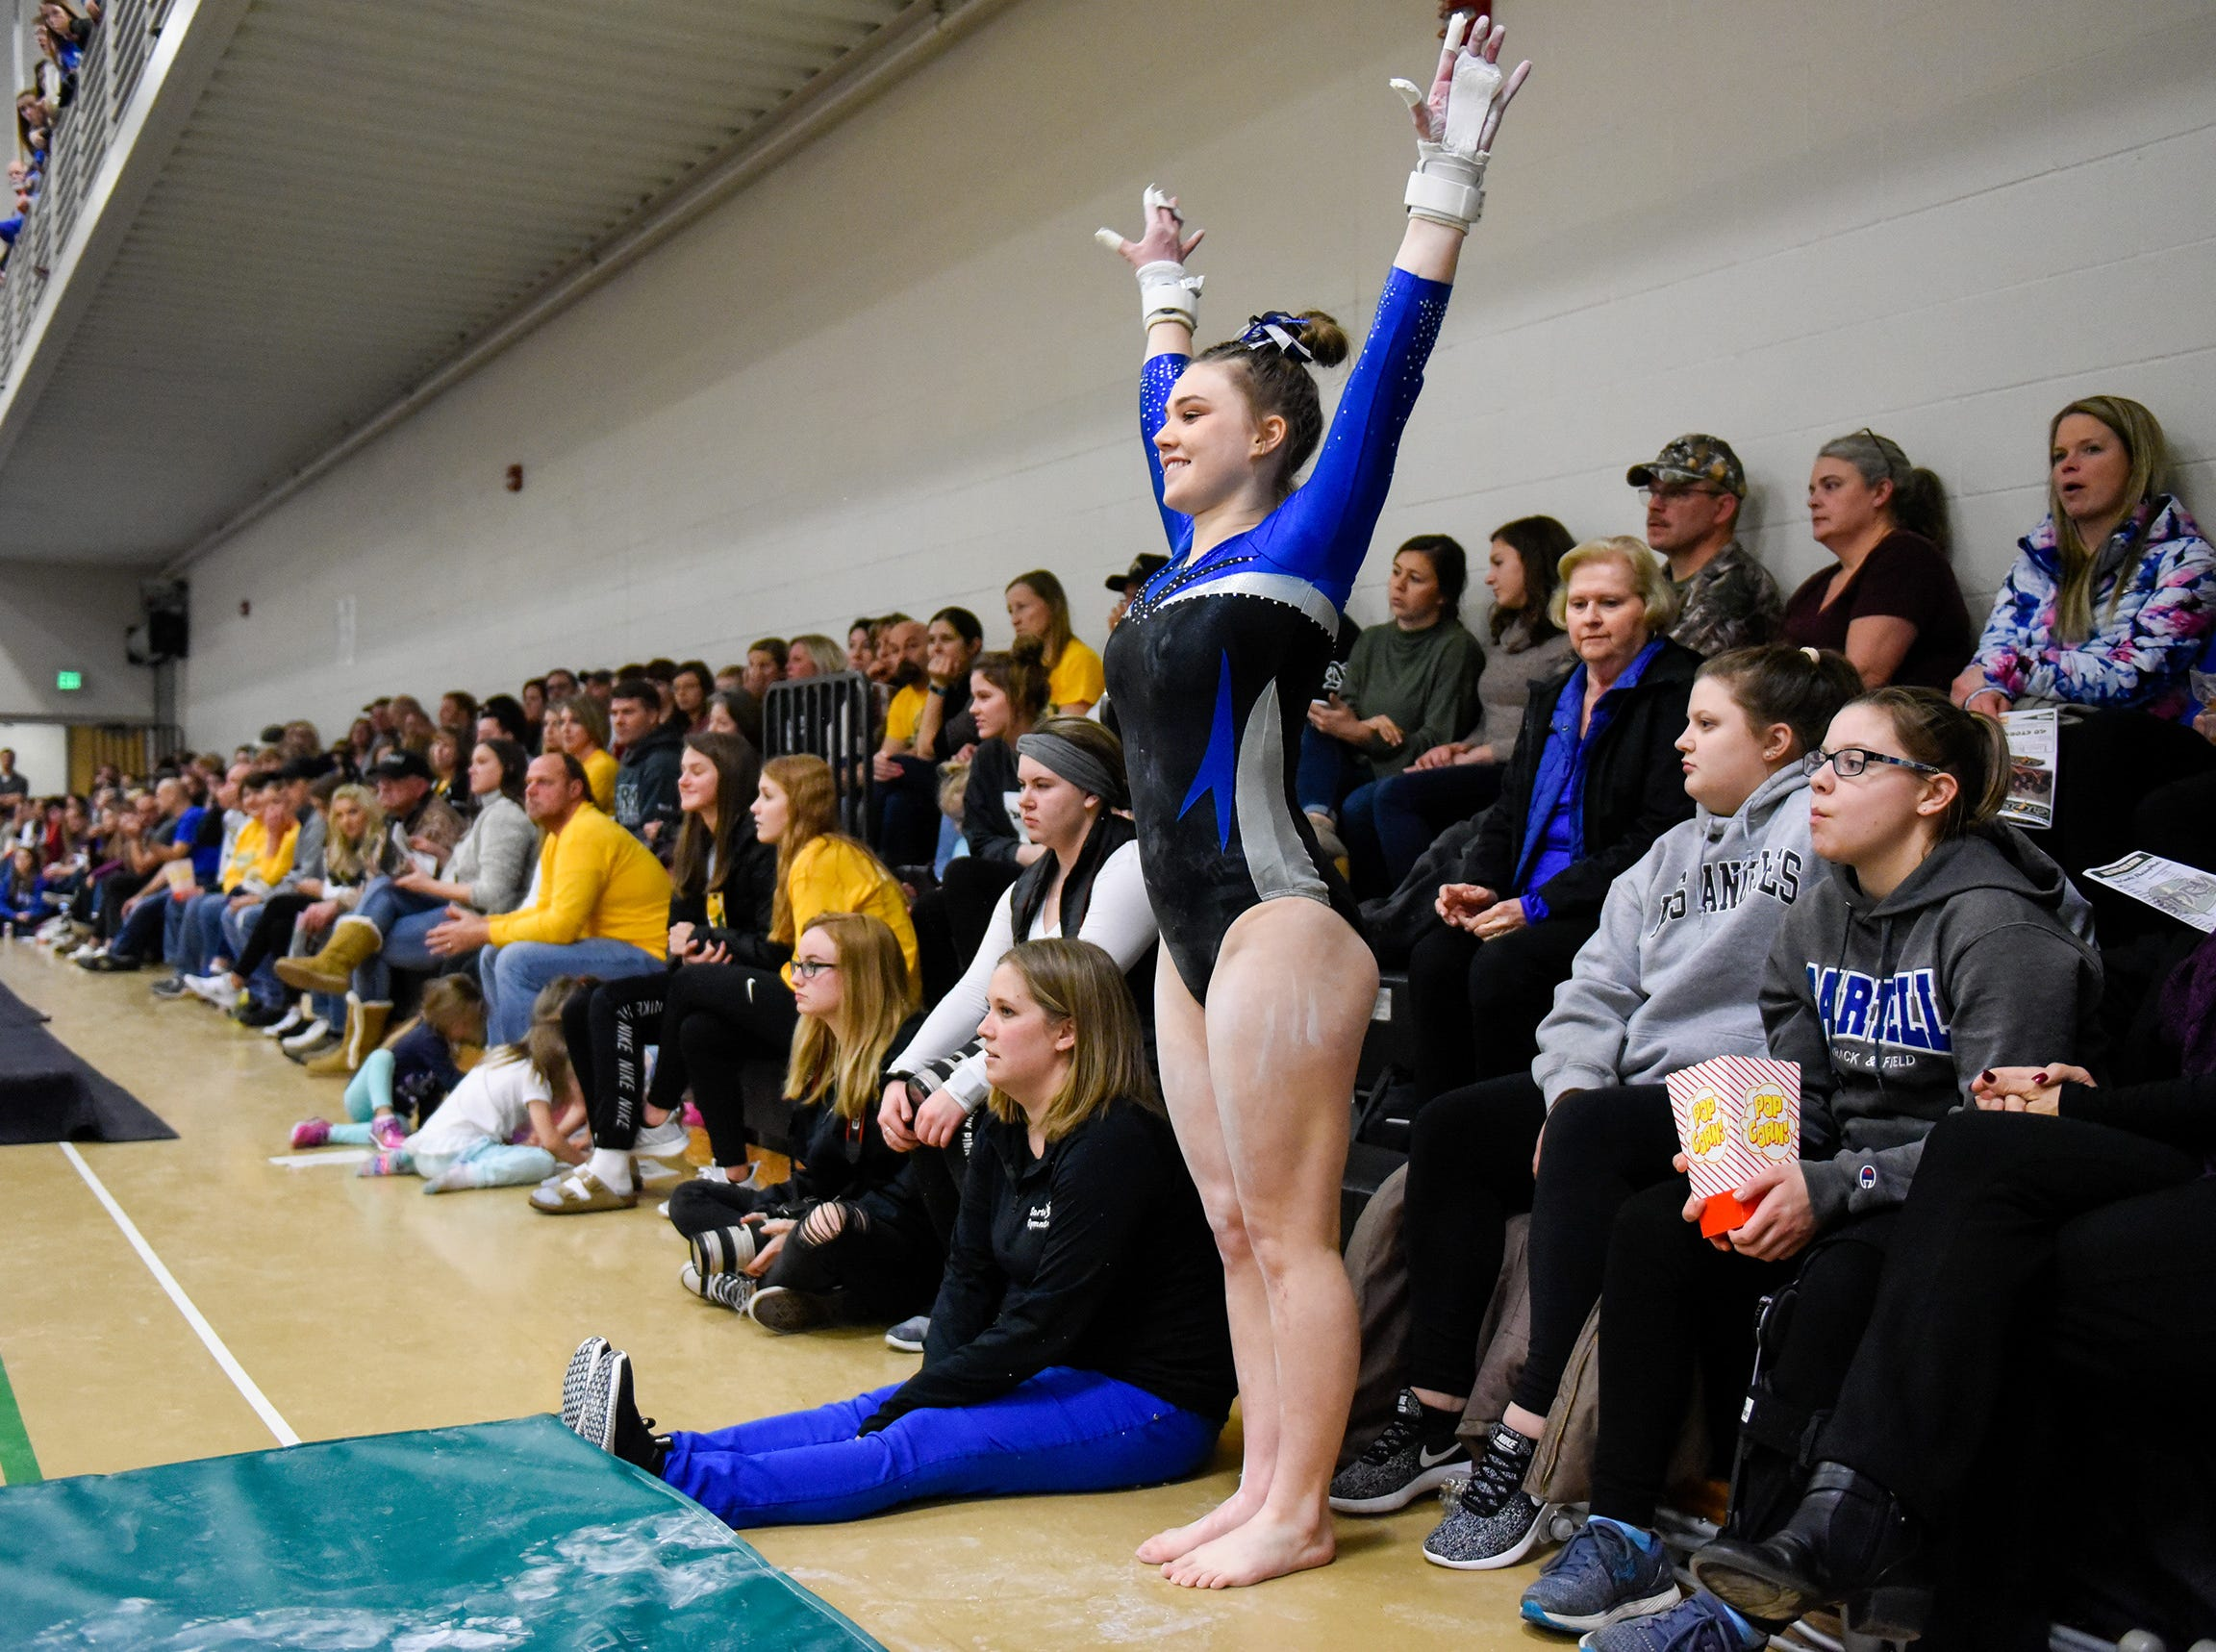 Sartell's Abigail Weber starts her bar routine for the crowd Thursday, Jan. 3, at the Sauk Rapids-Rice High School.